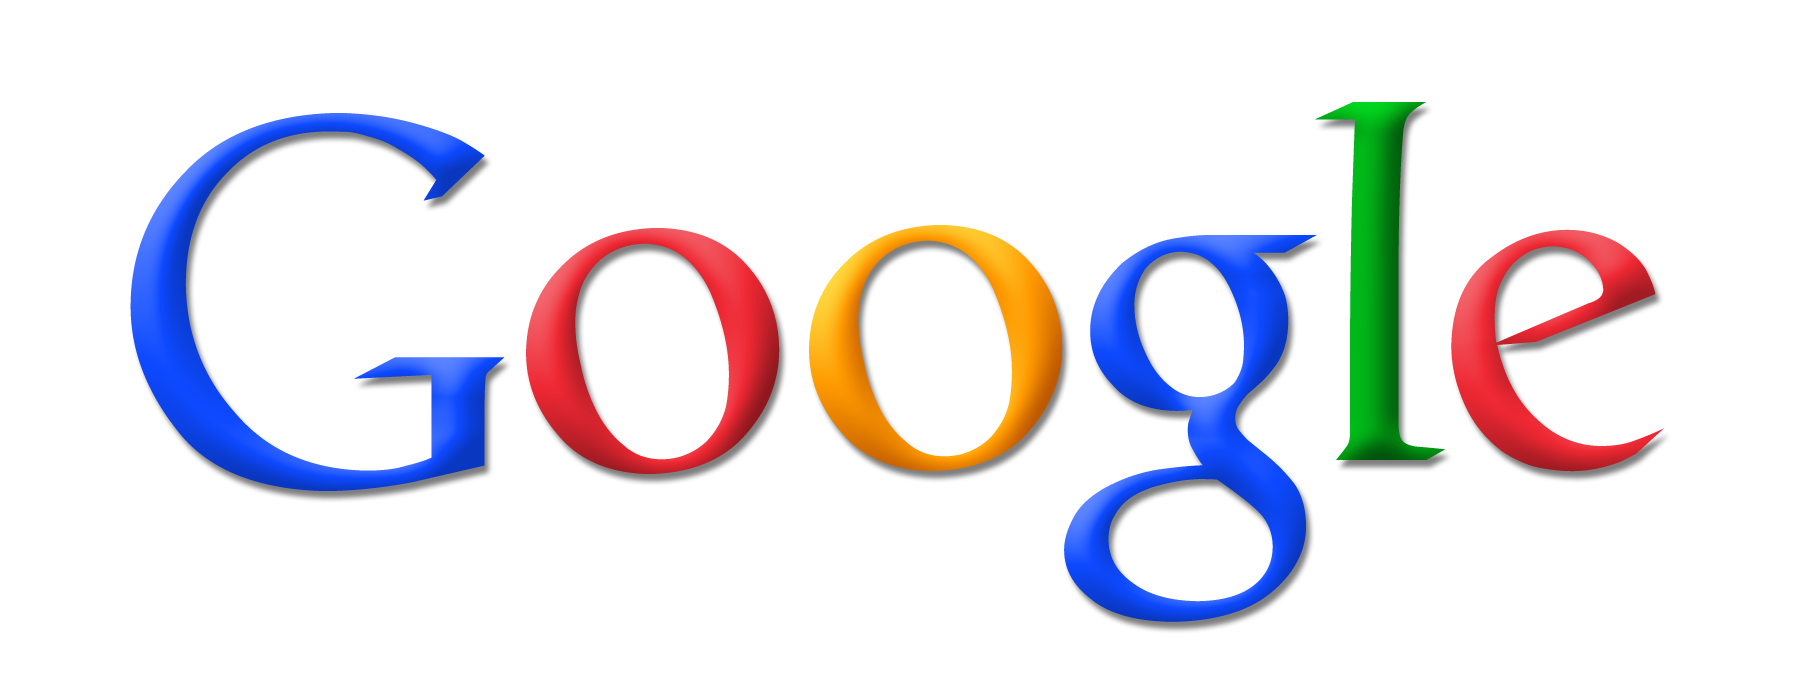 New Google logo - unofficial Google logo on transparent background - Google HD PNG